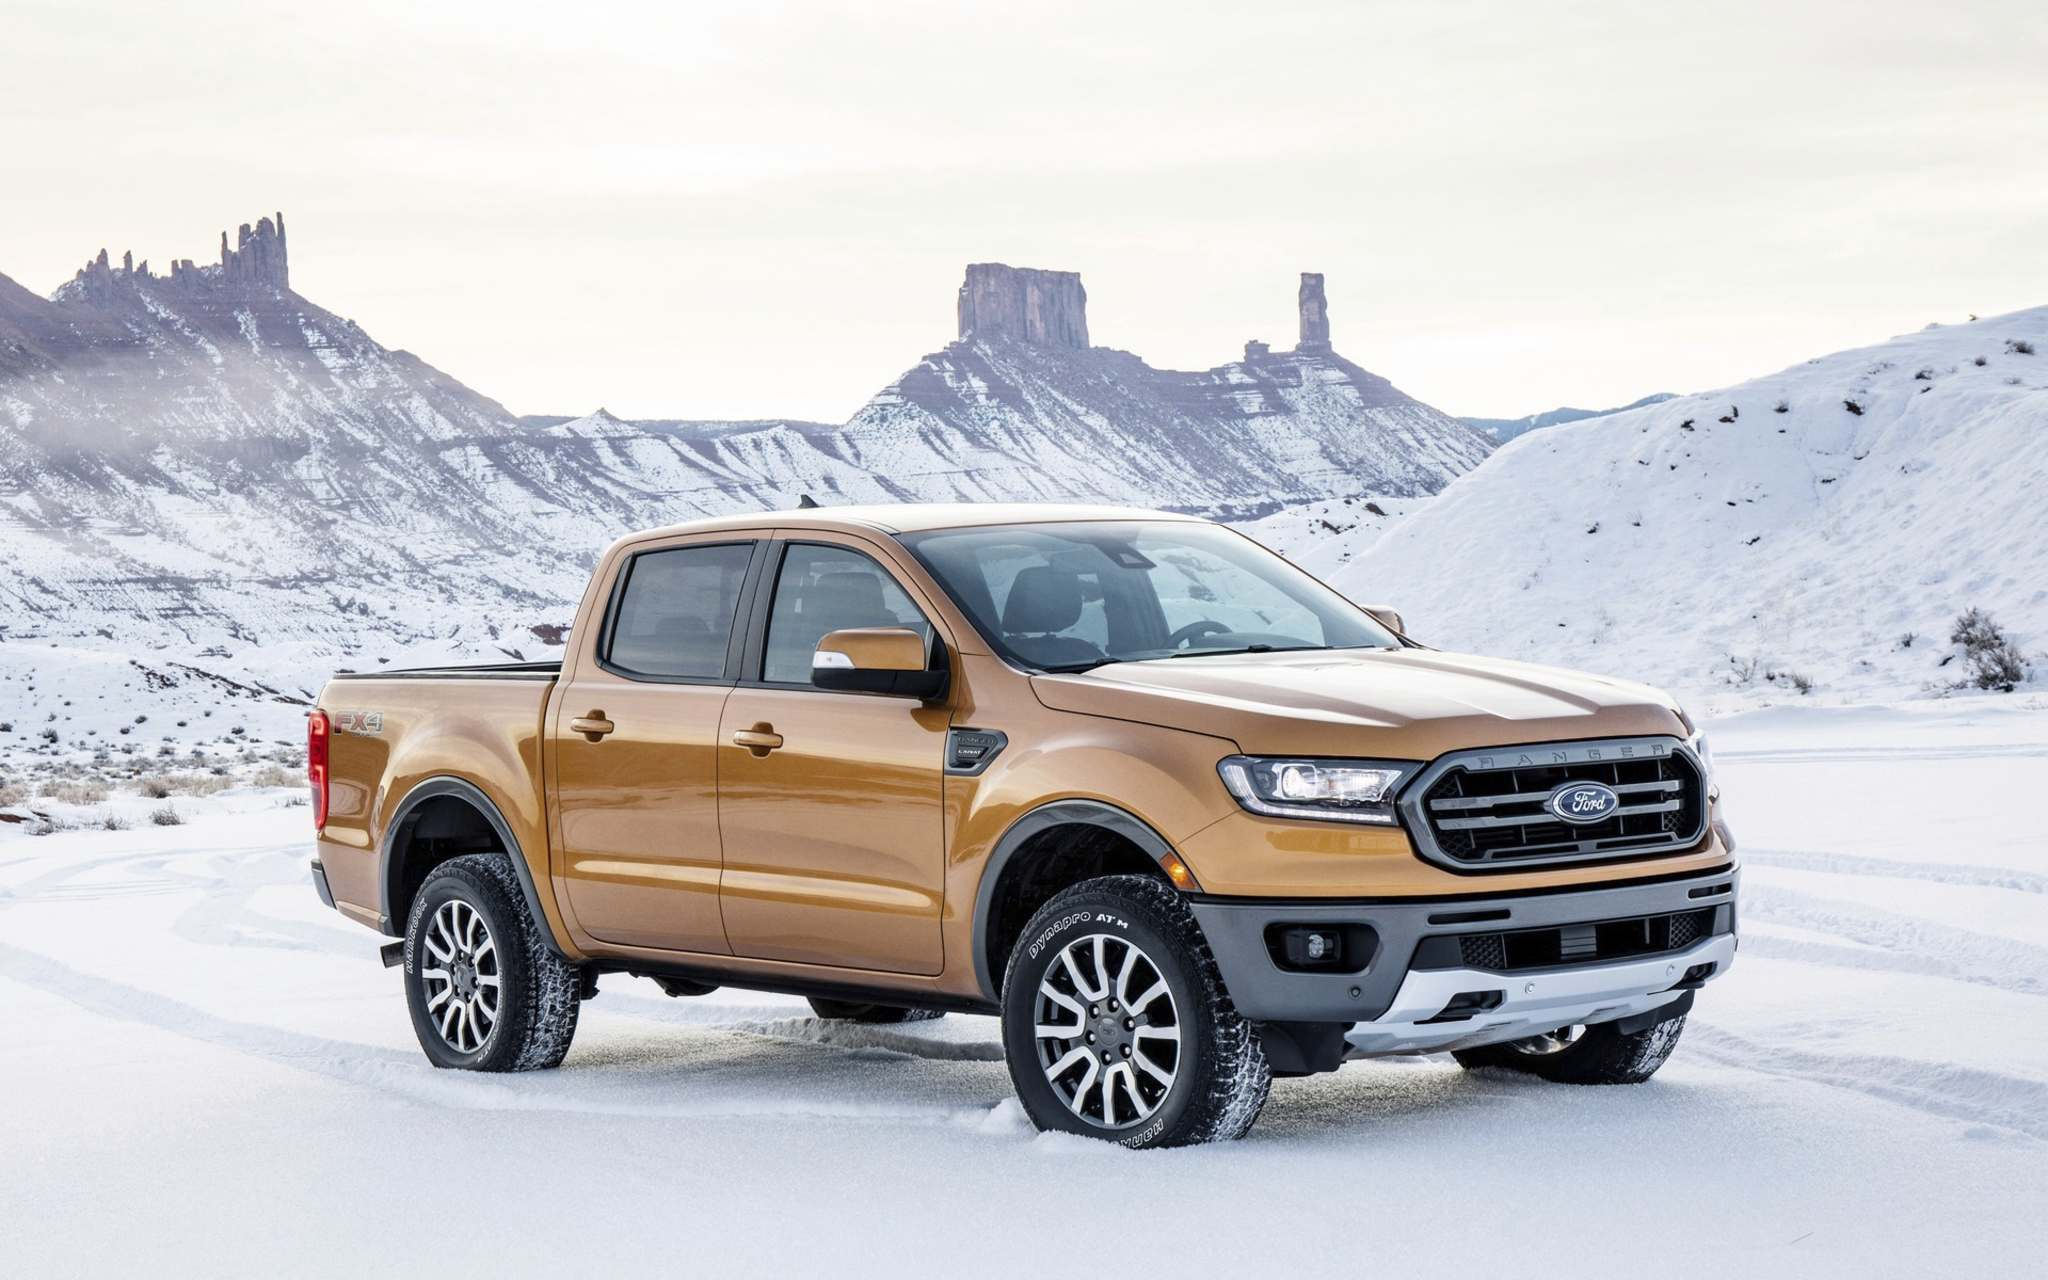 FORDWhile Ford abandoned the Ranger brand in North America eight years ago, it continued to build the mid-size pickup in Thailand and Argentina. The revived Ranger takes cues from that model, but incorporates a different drivetrain.